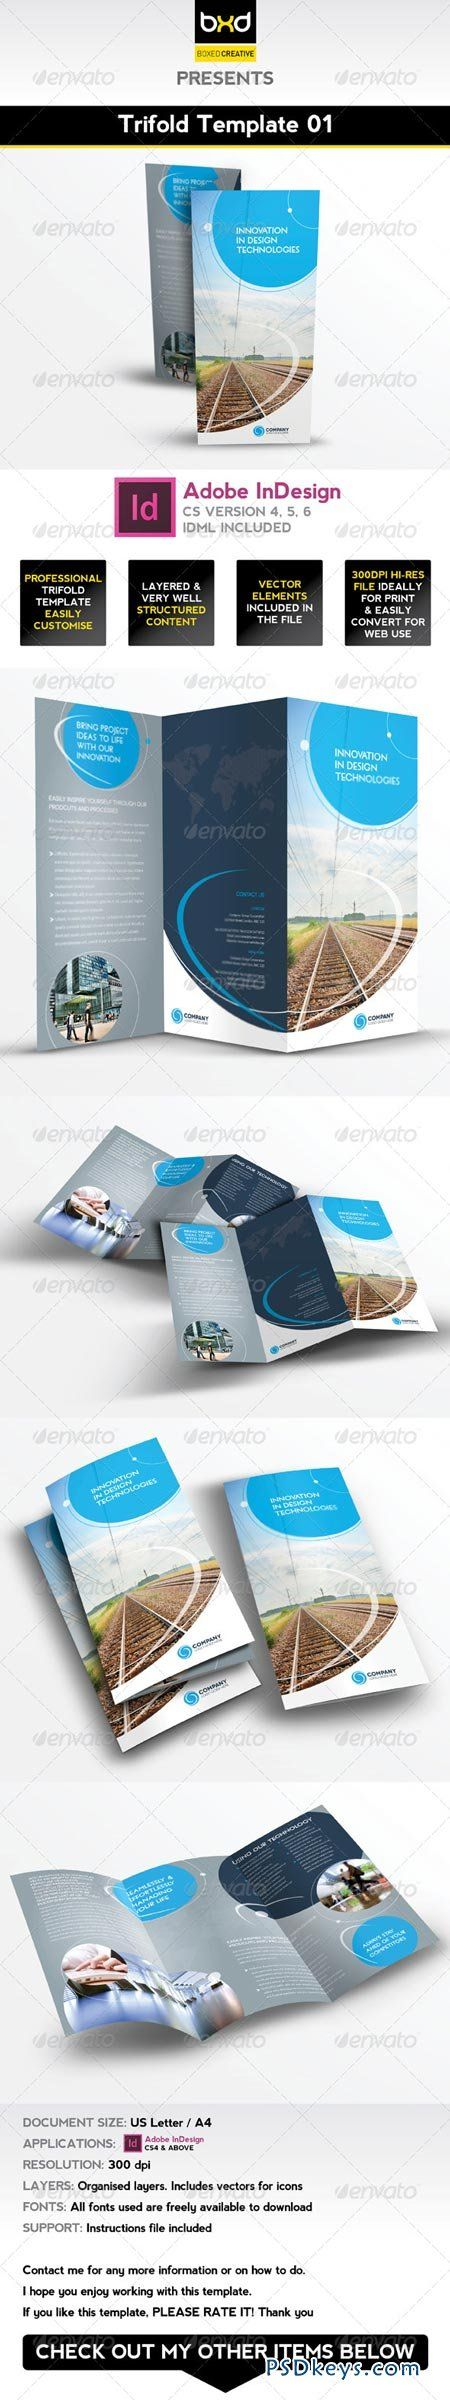 Trifold Brochure Template 01 - InDesign Layout 4476765 | Brochures ...